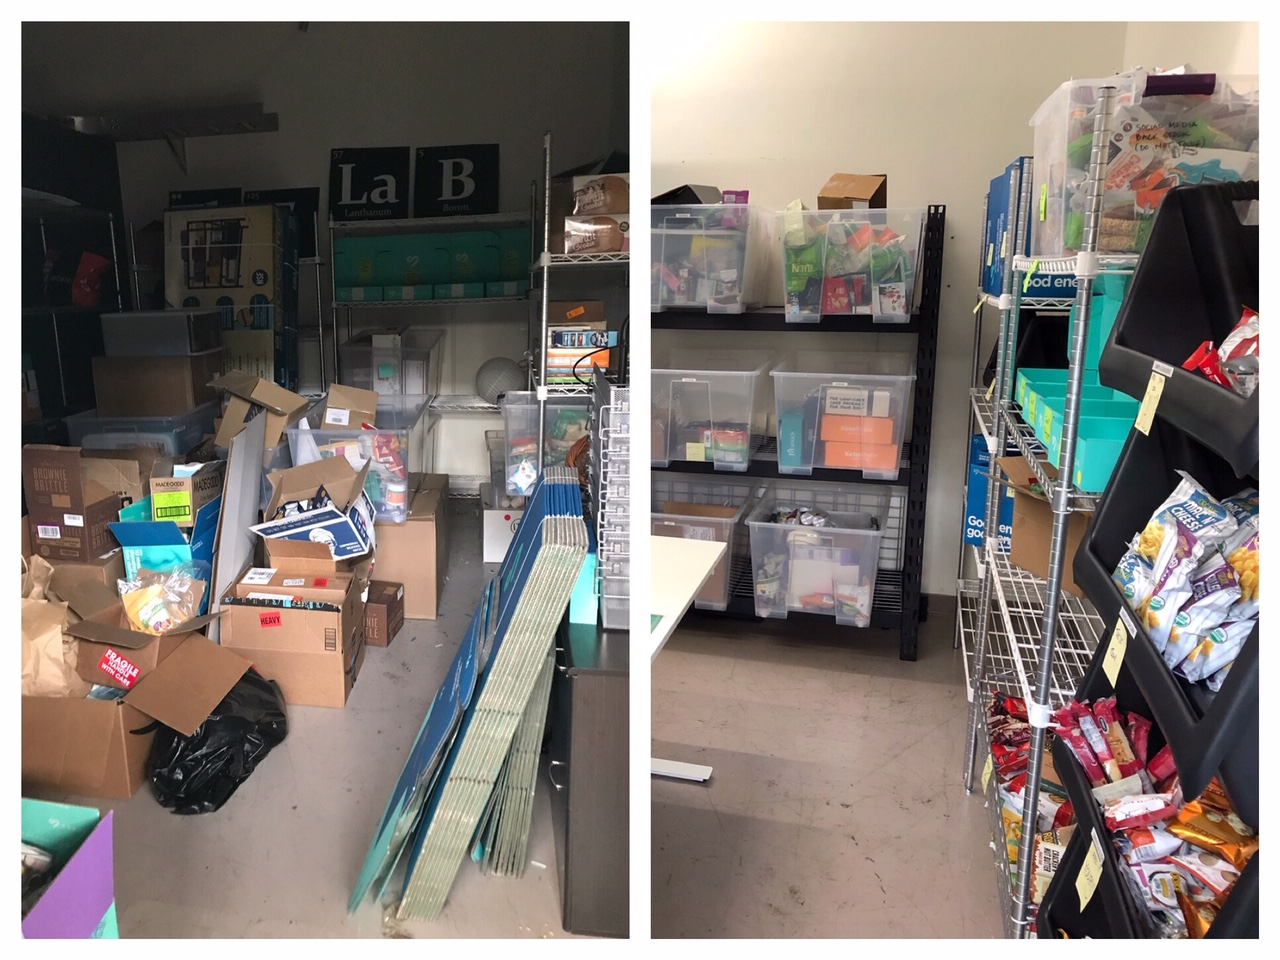 Corporate sample product closet before/after